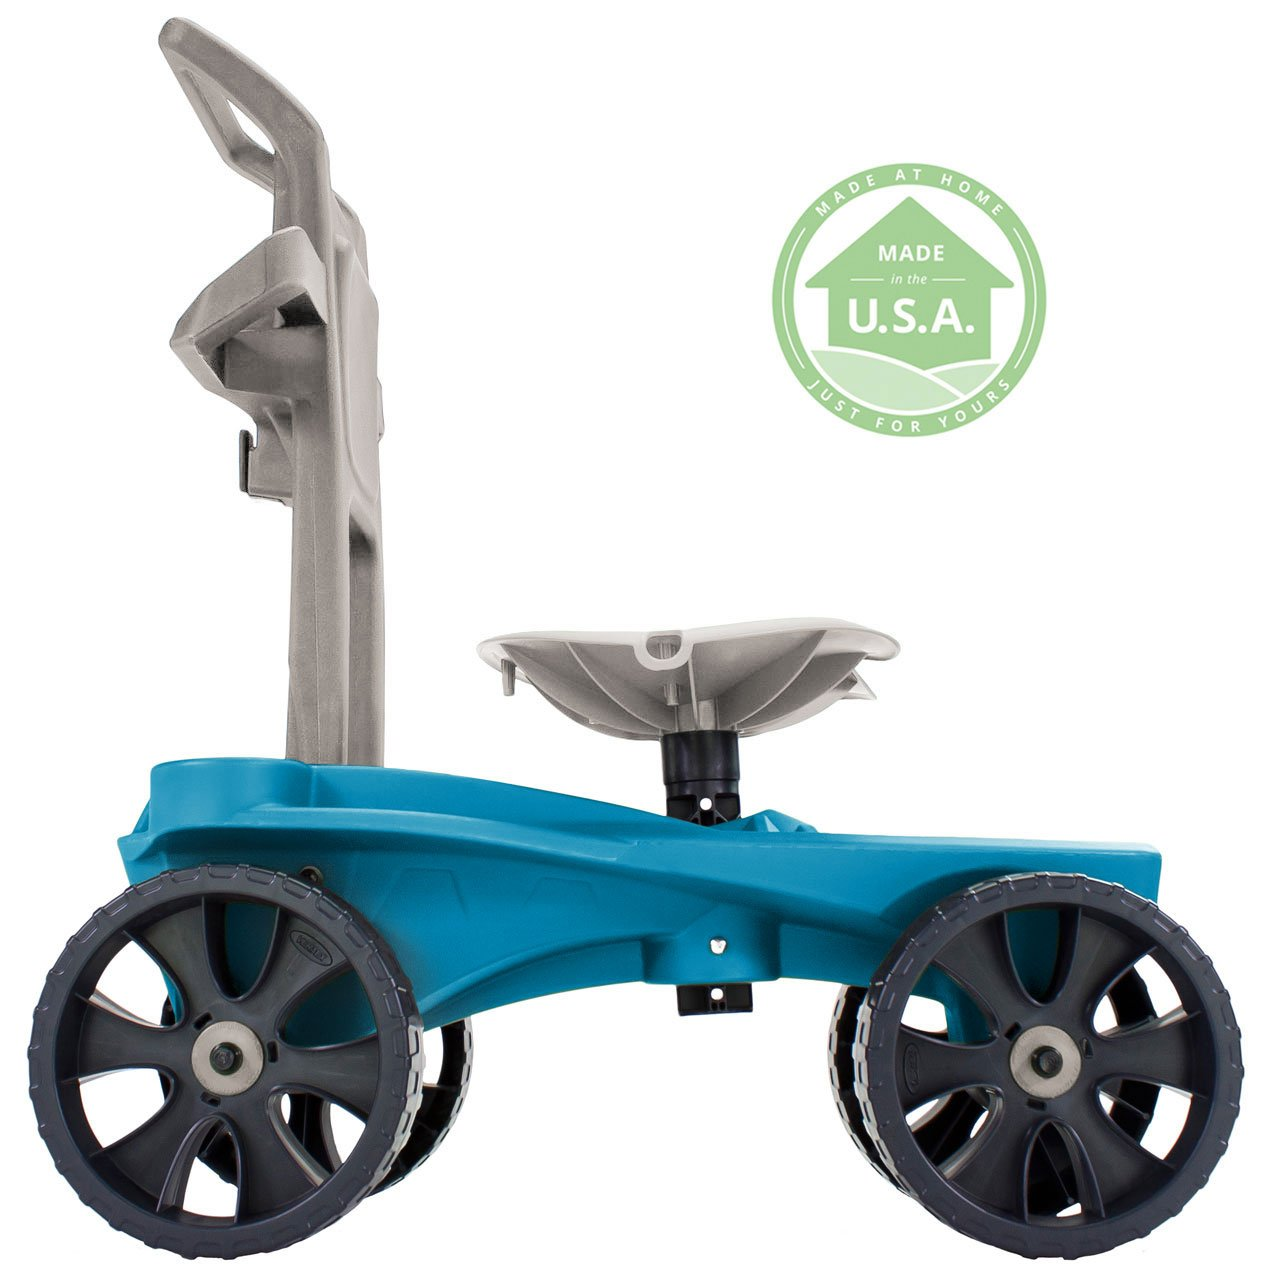 Easy Up Deluxe XTV Rolling Garden Seat and Scoot - Adjustable Swivel Seat, Heavy Duty Wheels, and Ergonomic Design To Assist Standing, Sitting, and Bending Over Made in the USA (Deluxe XTV Teal) by Vertex (Image #3)